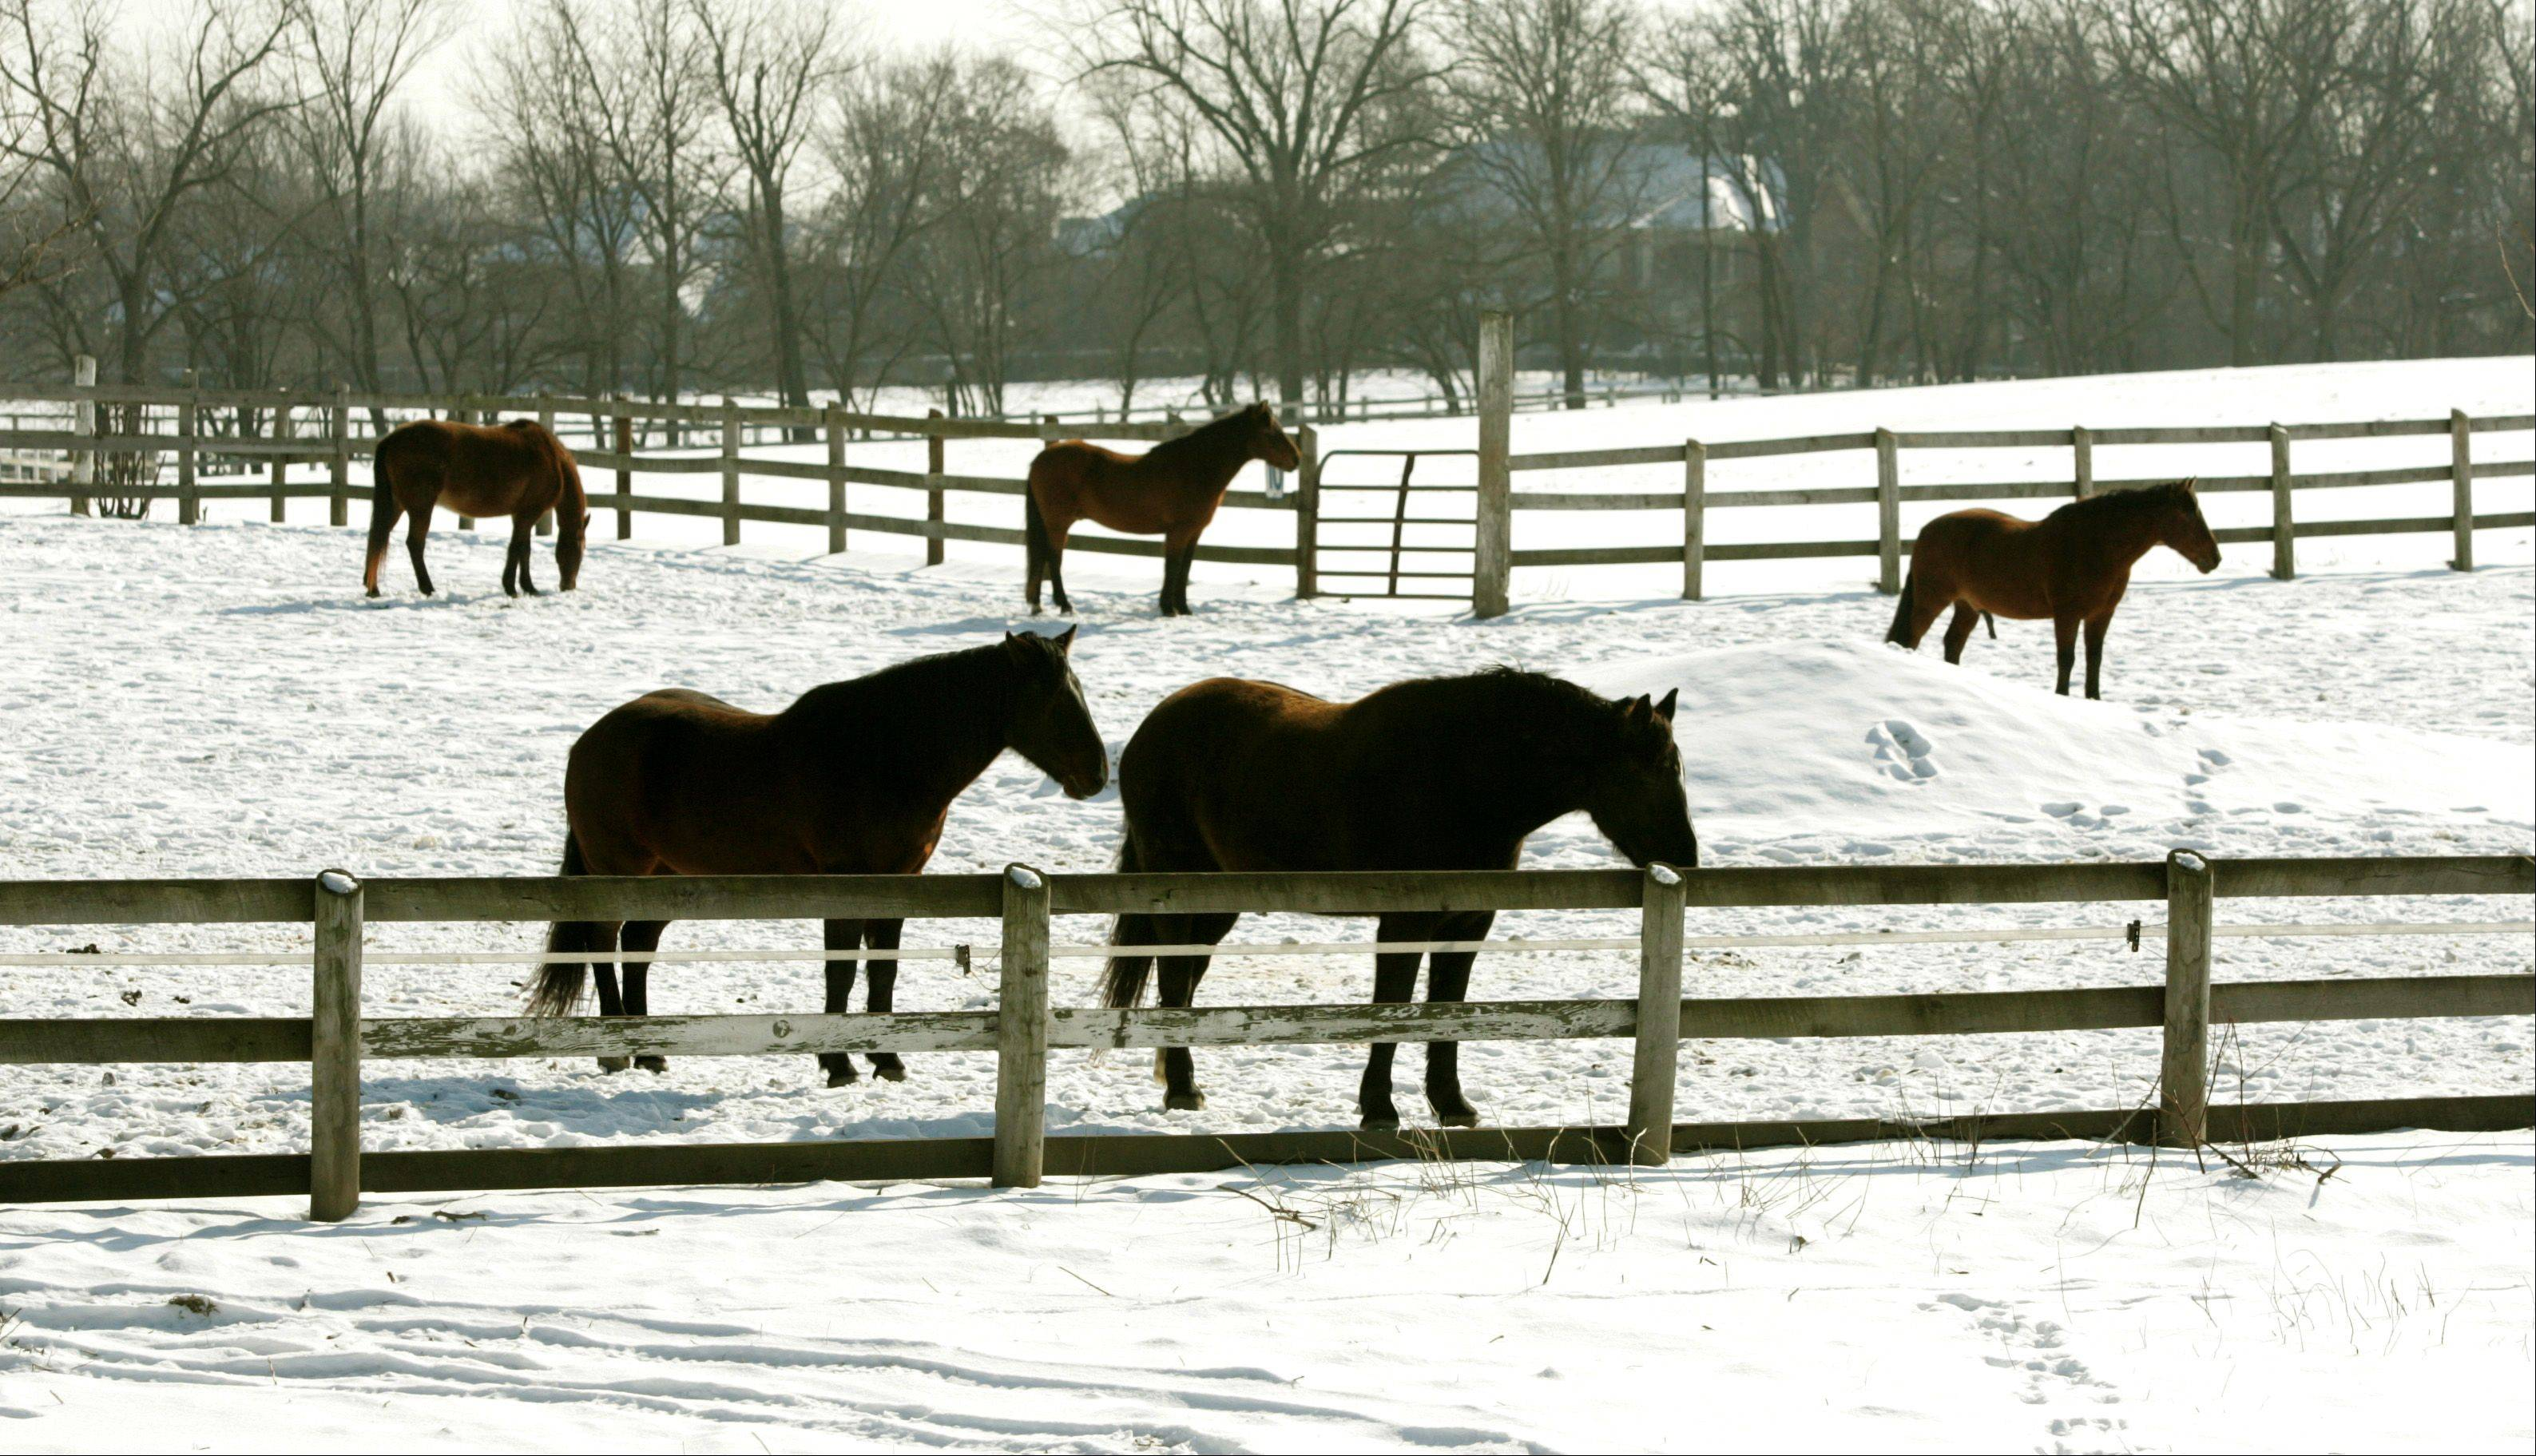 DuPage Forest Preserve Commissioners are conducting their own investigation into claims that horses are poorly treated at Danada Equestrian Center in Wheaton.